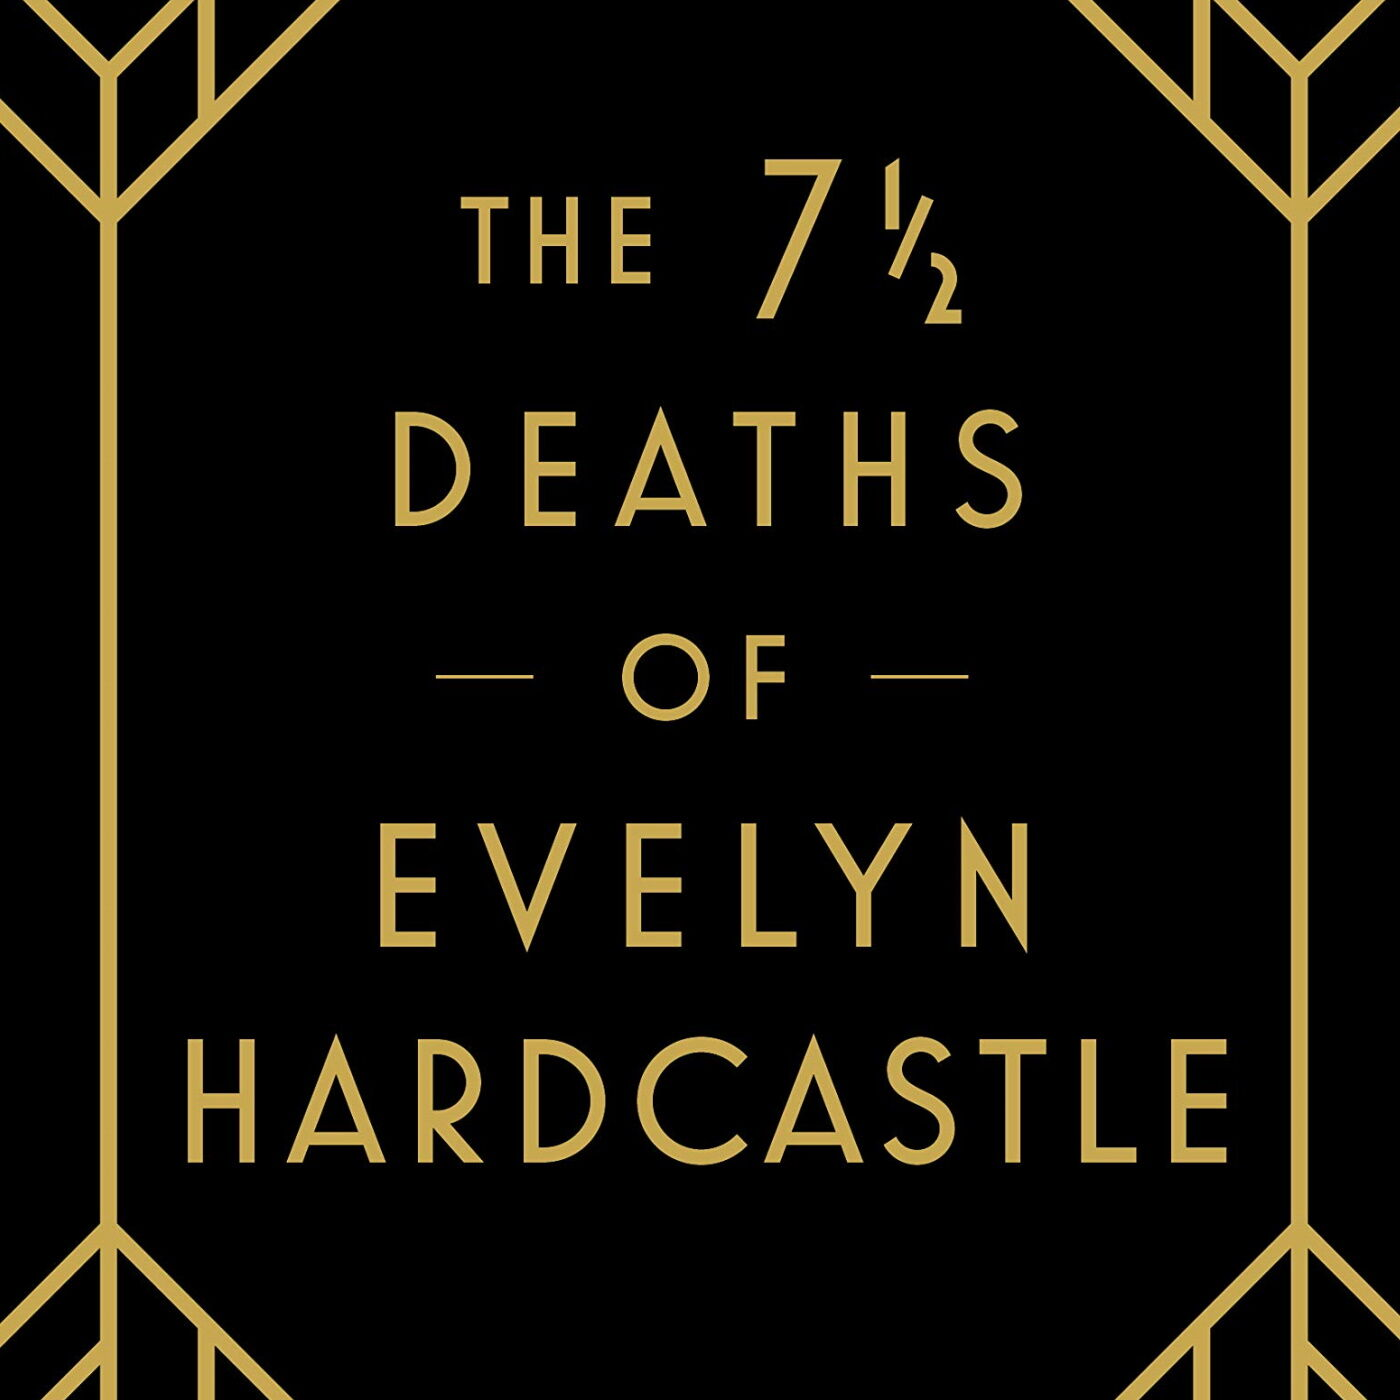 Book-Space! #17. The 7½ Deaths of Evelyn Hardcastle